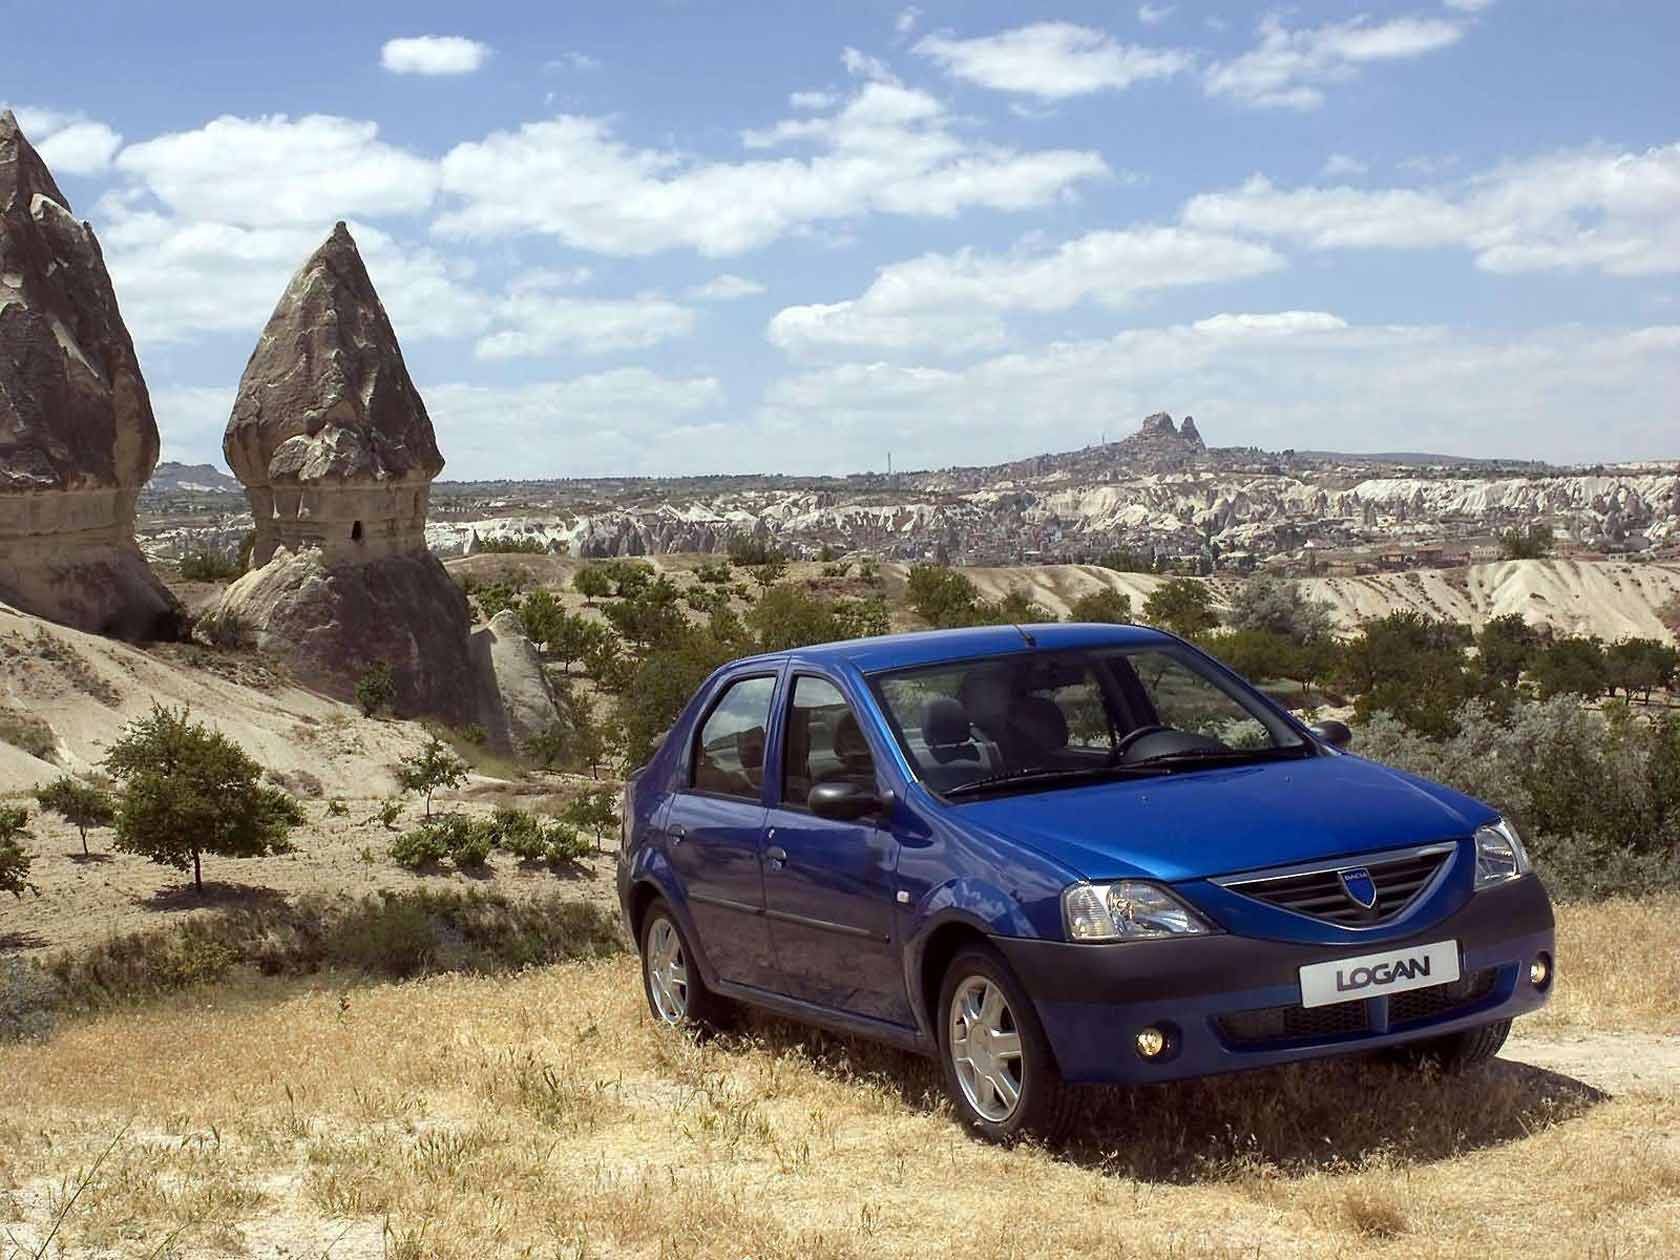 2005 Dacia Logan 1.4 MPI photo - 1